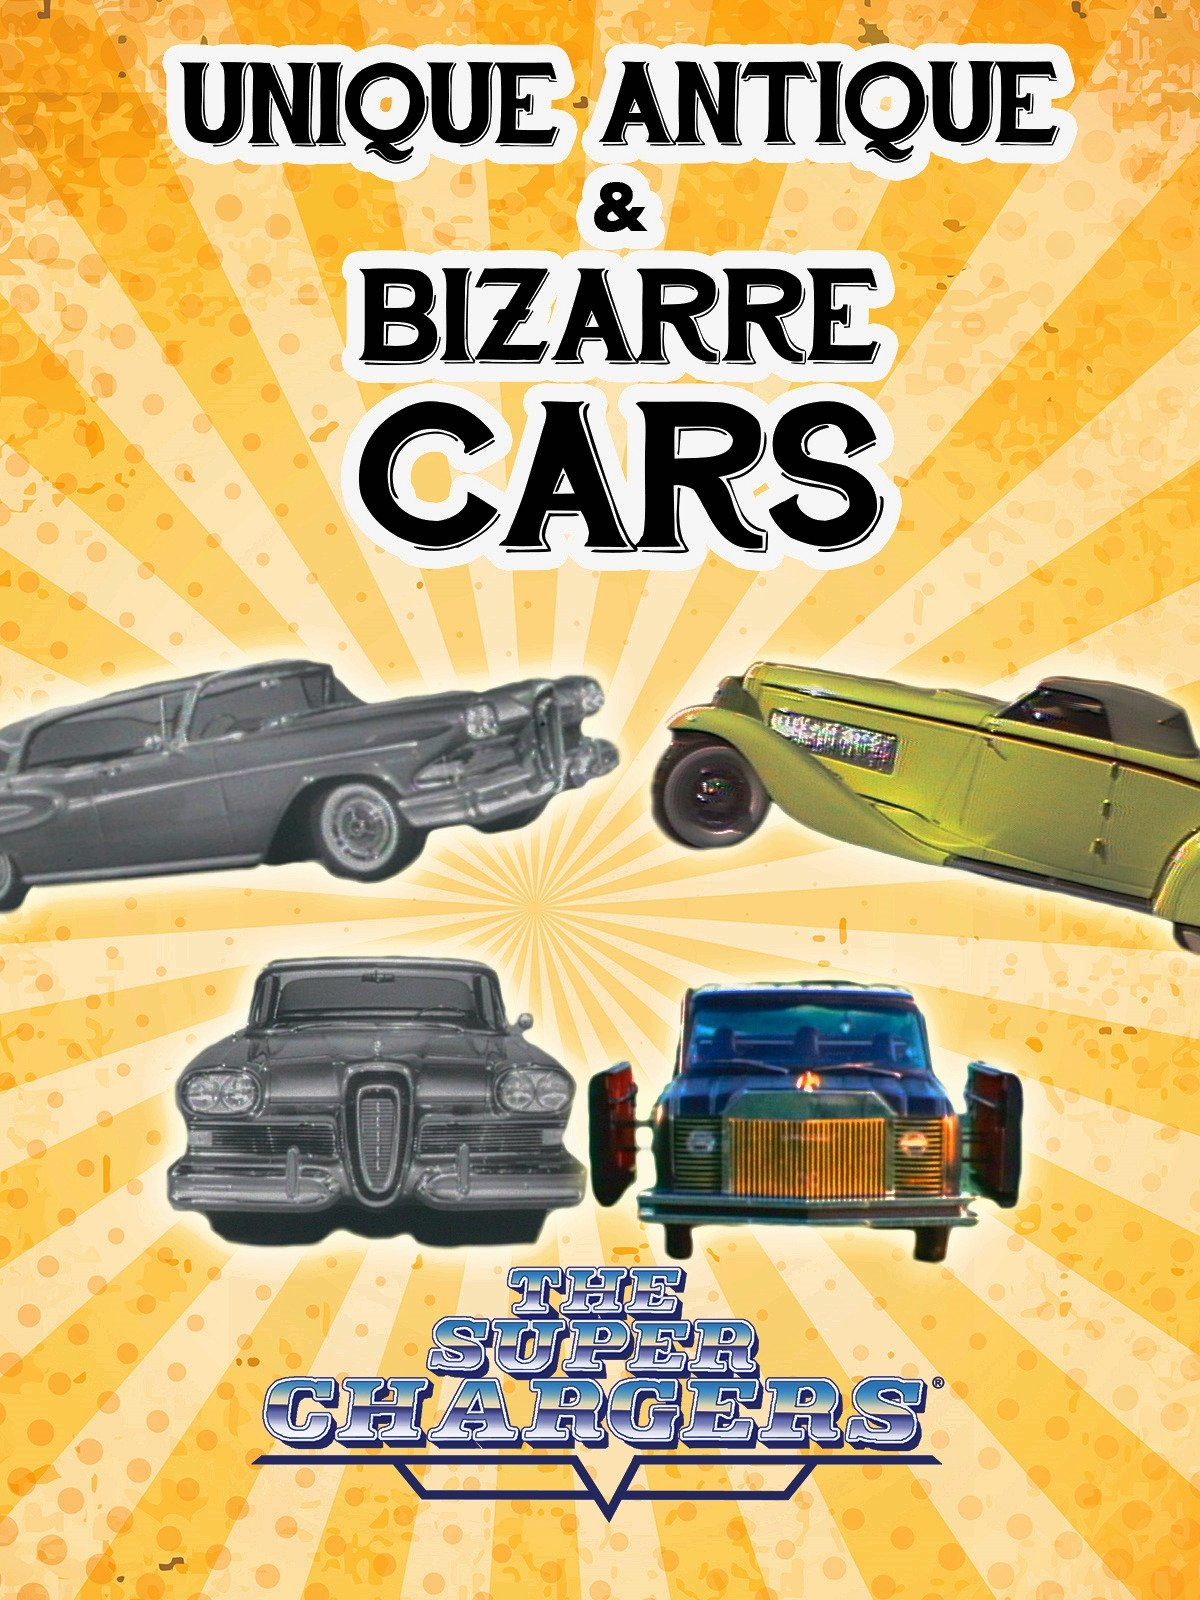 Unique, Antique, & Bizarre Cars